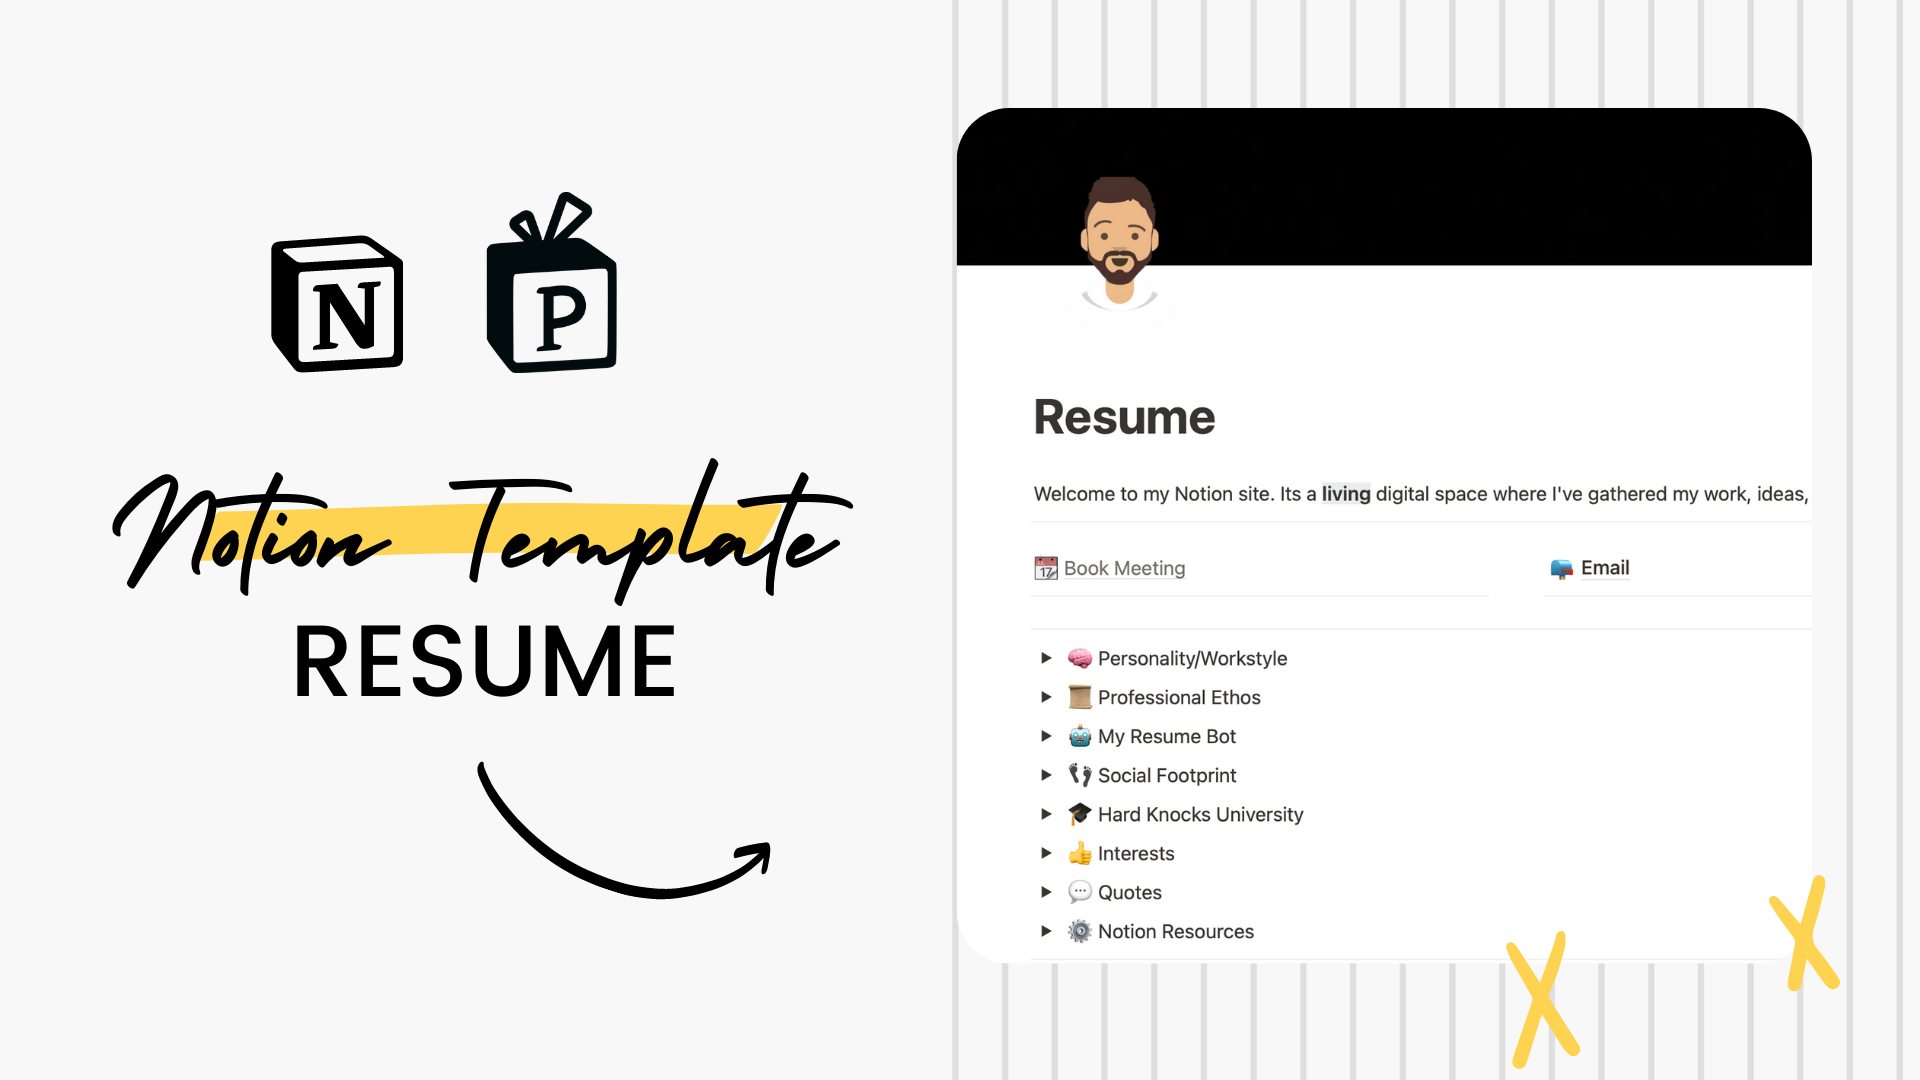 A Cool & Interactive Resume Template | Built Using Notion